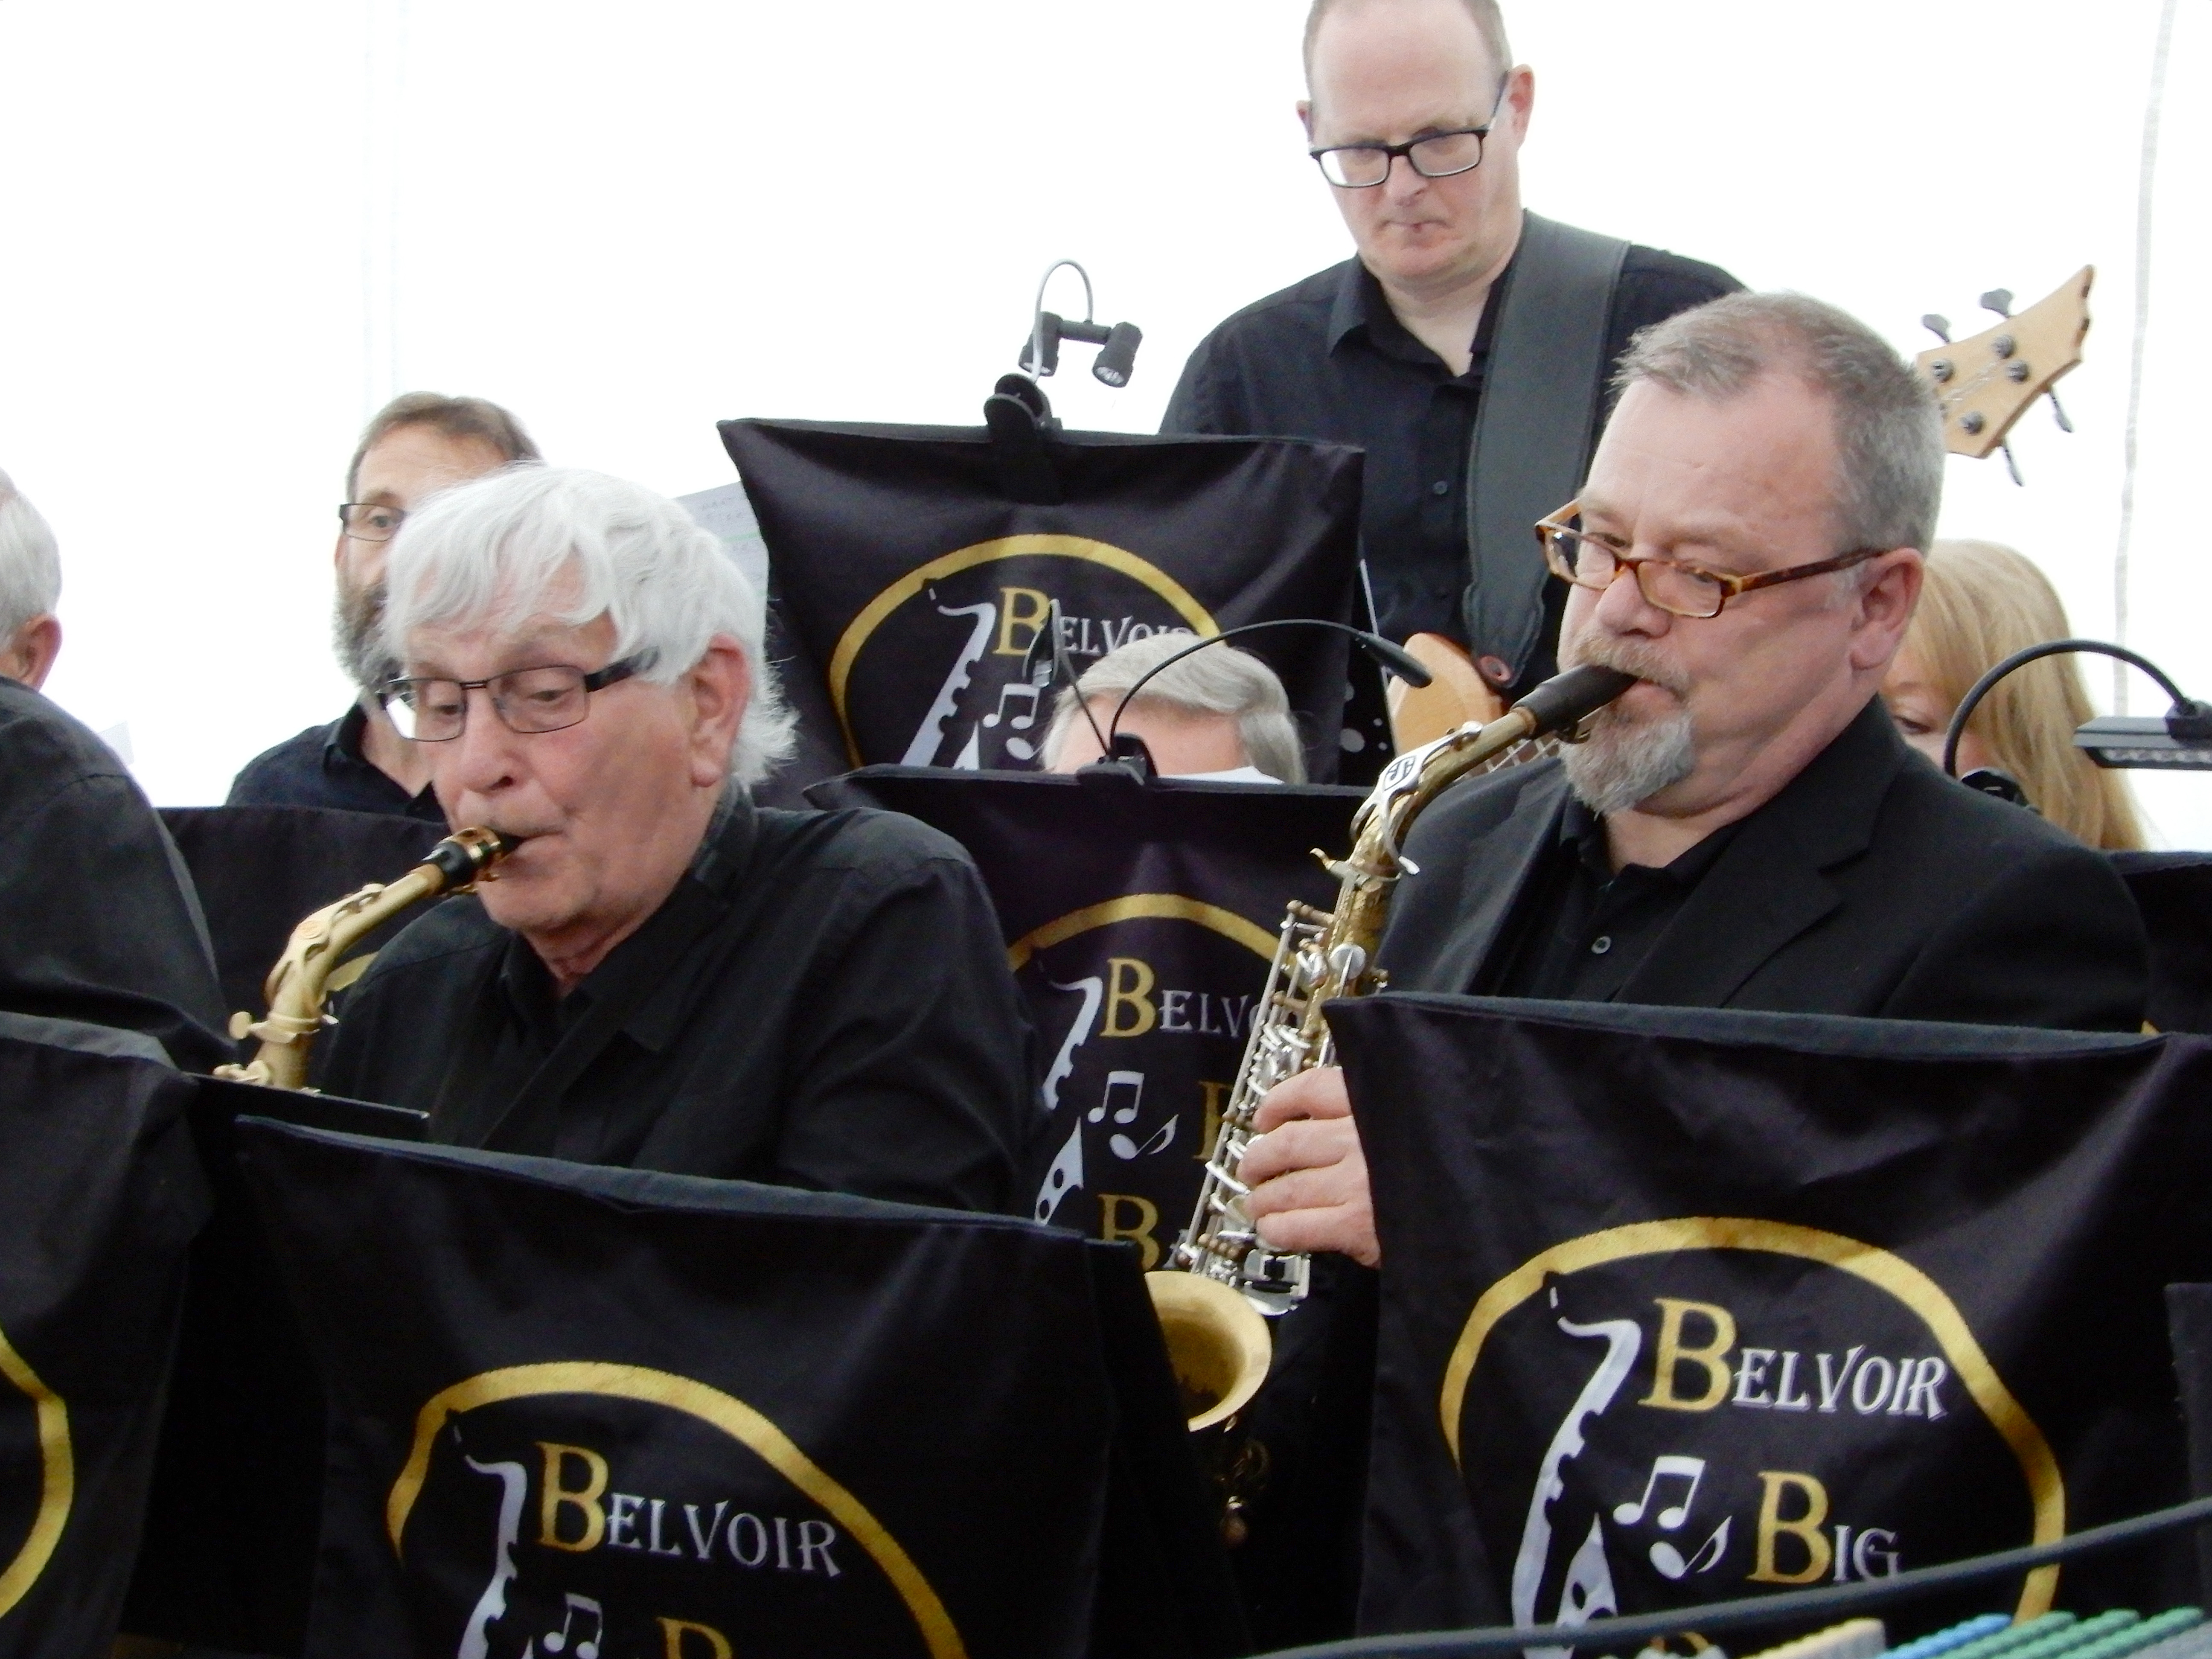 BELVOIR BIG BAND MAY 2019